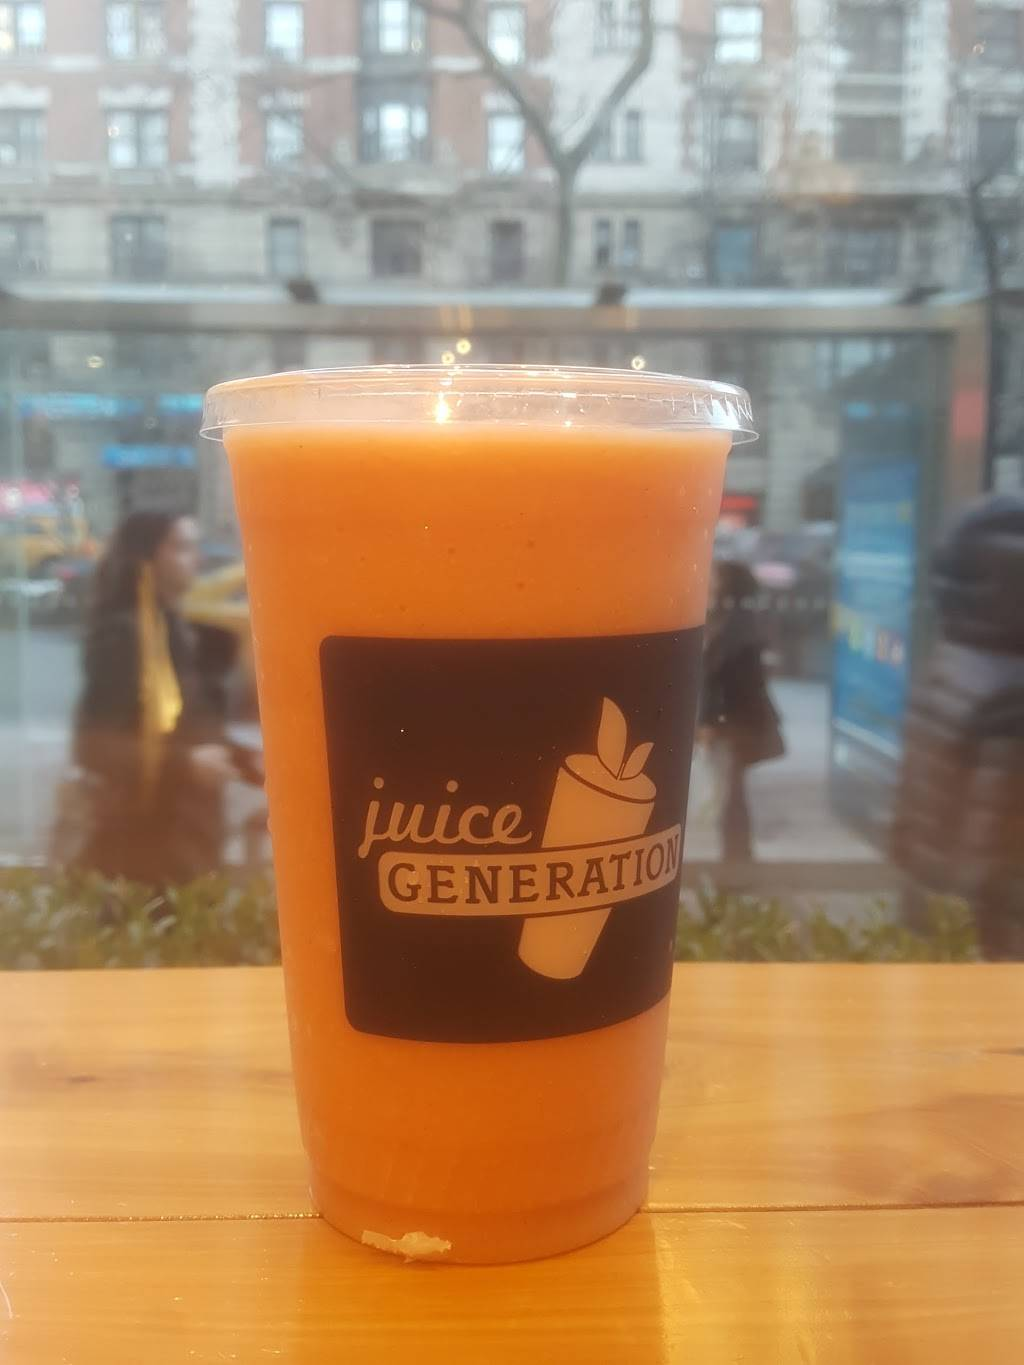 Juice Generation | restaurant | 2345 Broadway, New York, NY 10024, USA | 2125311110 OR +1 212-531-1110